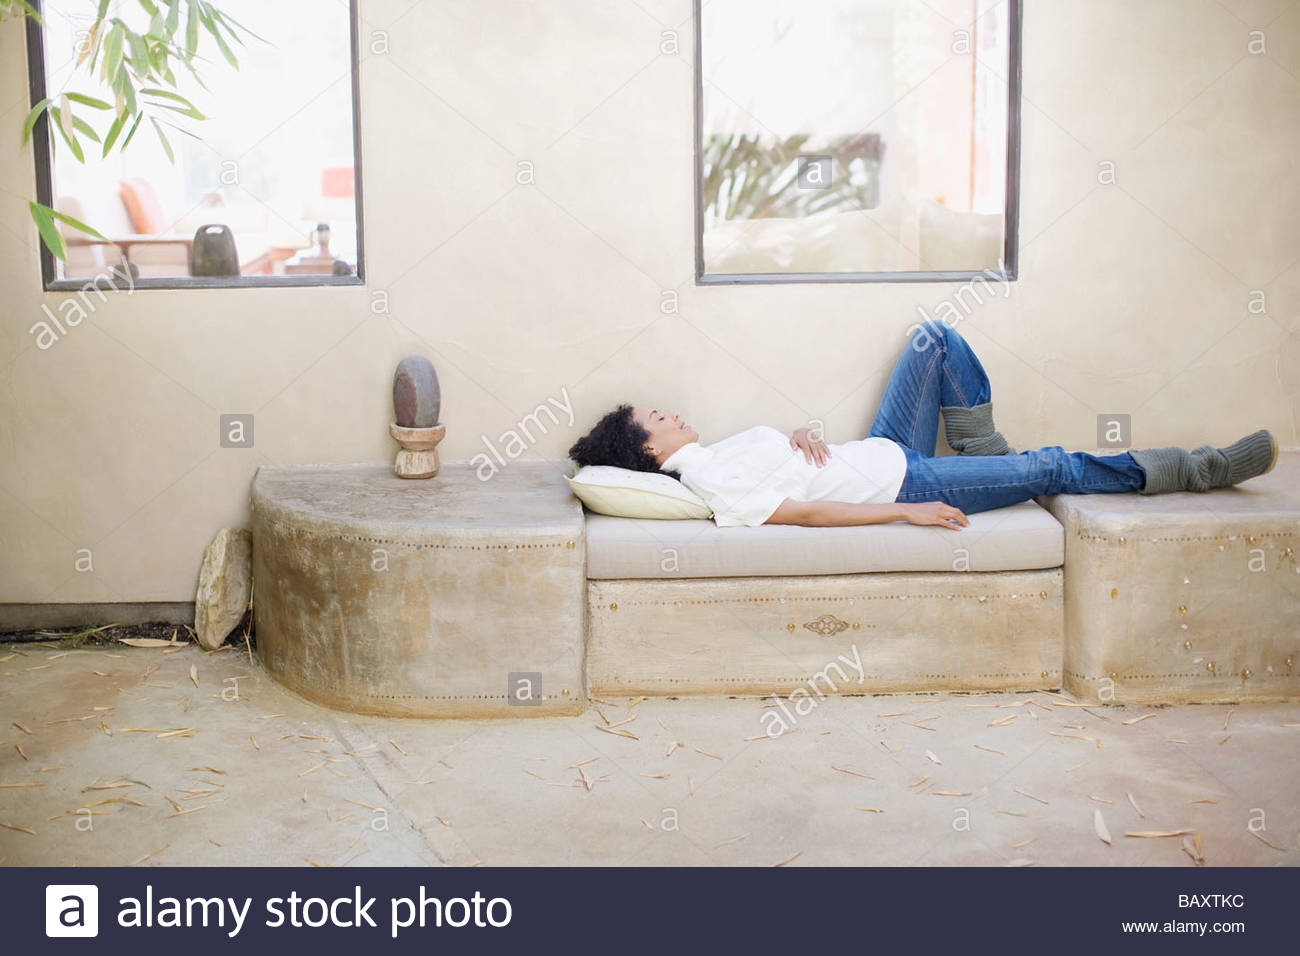 Woman laying on outdoor furniture - Stock Image